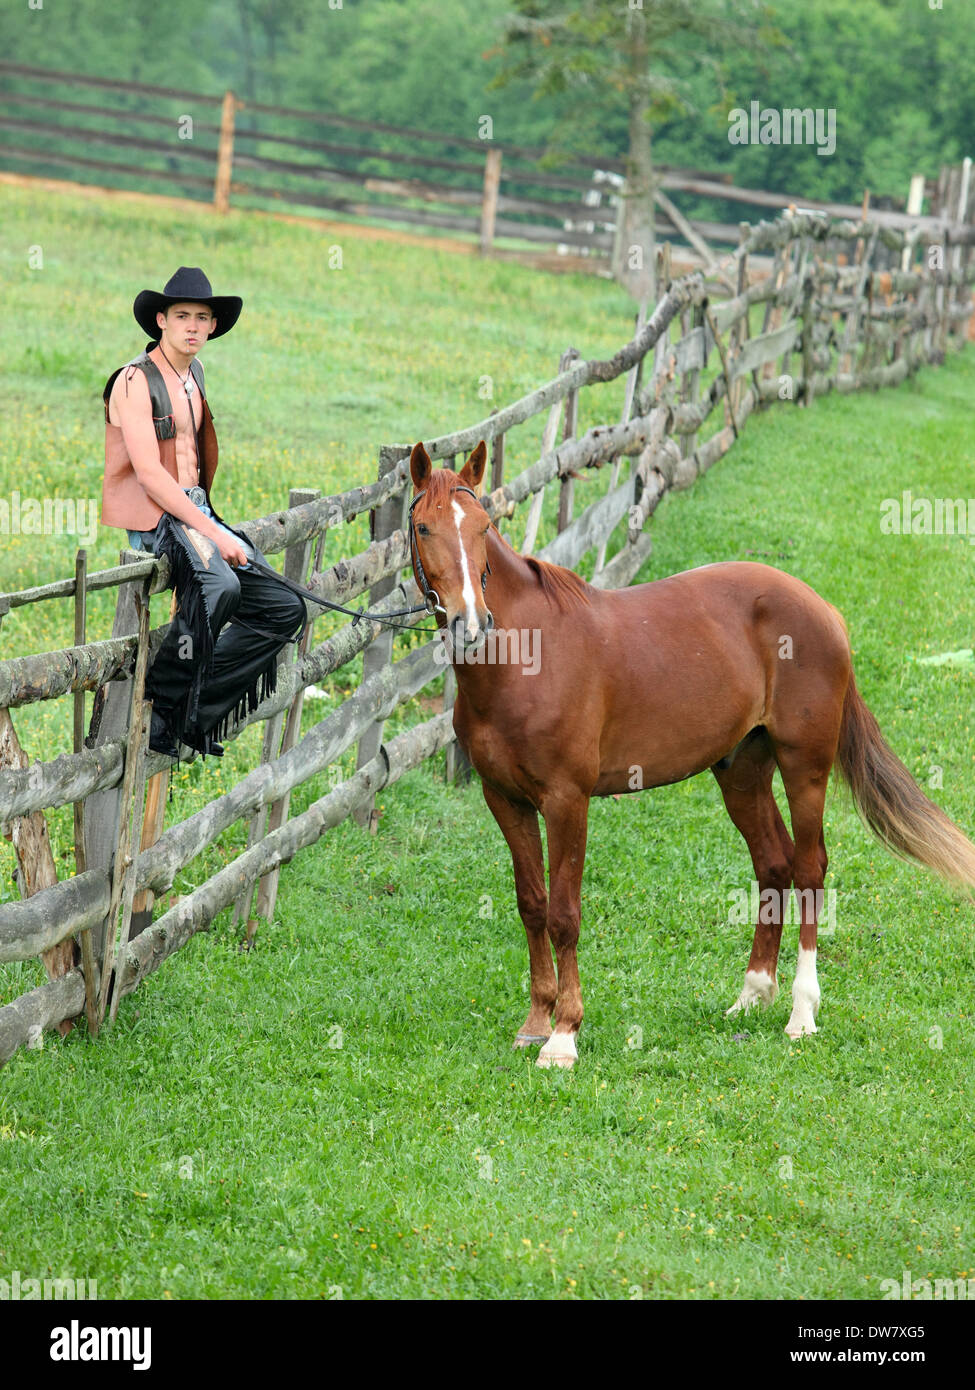 Man in cowboy clothes sitting on the fence beside the horse - Stock Image